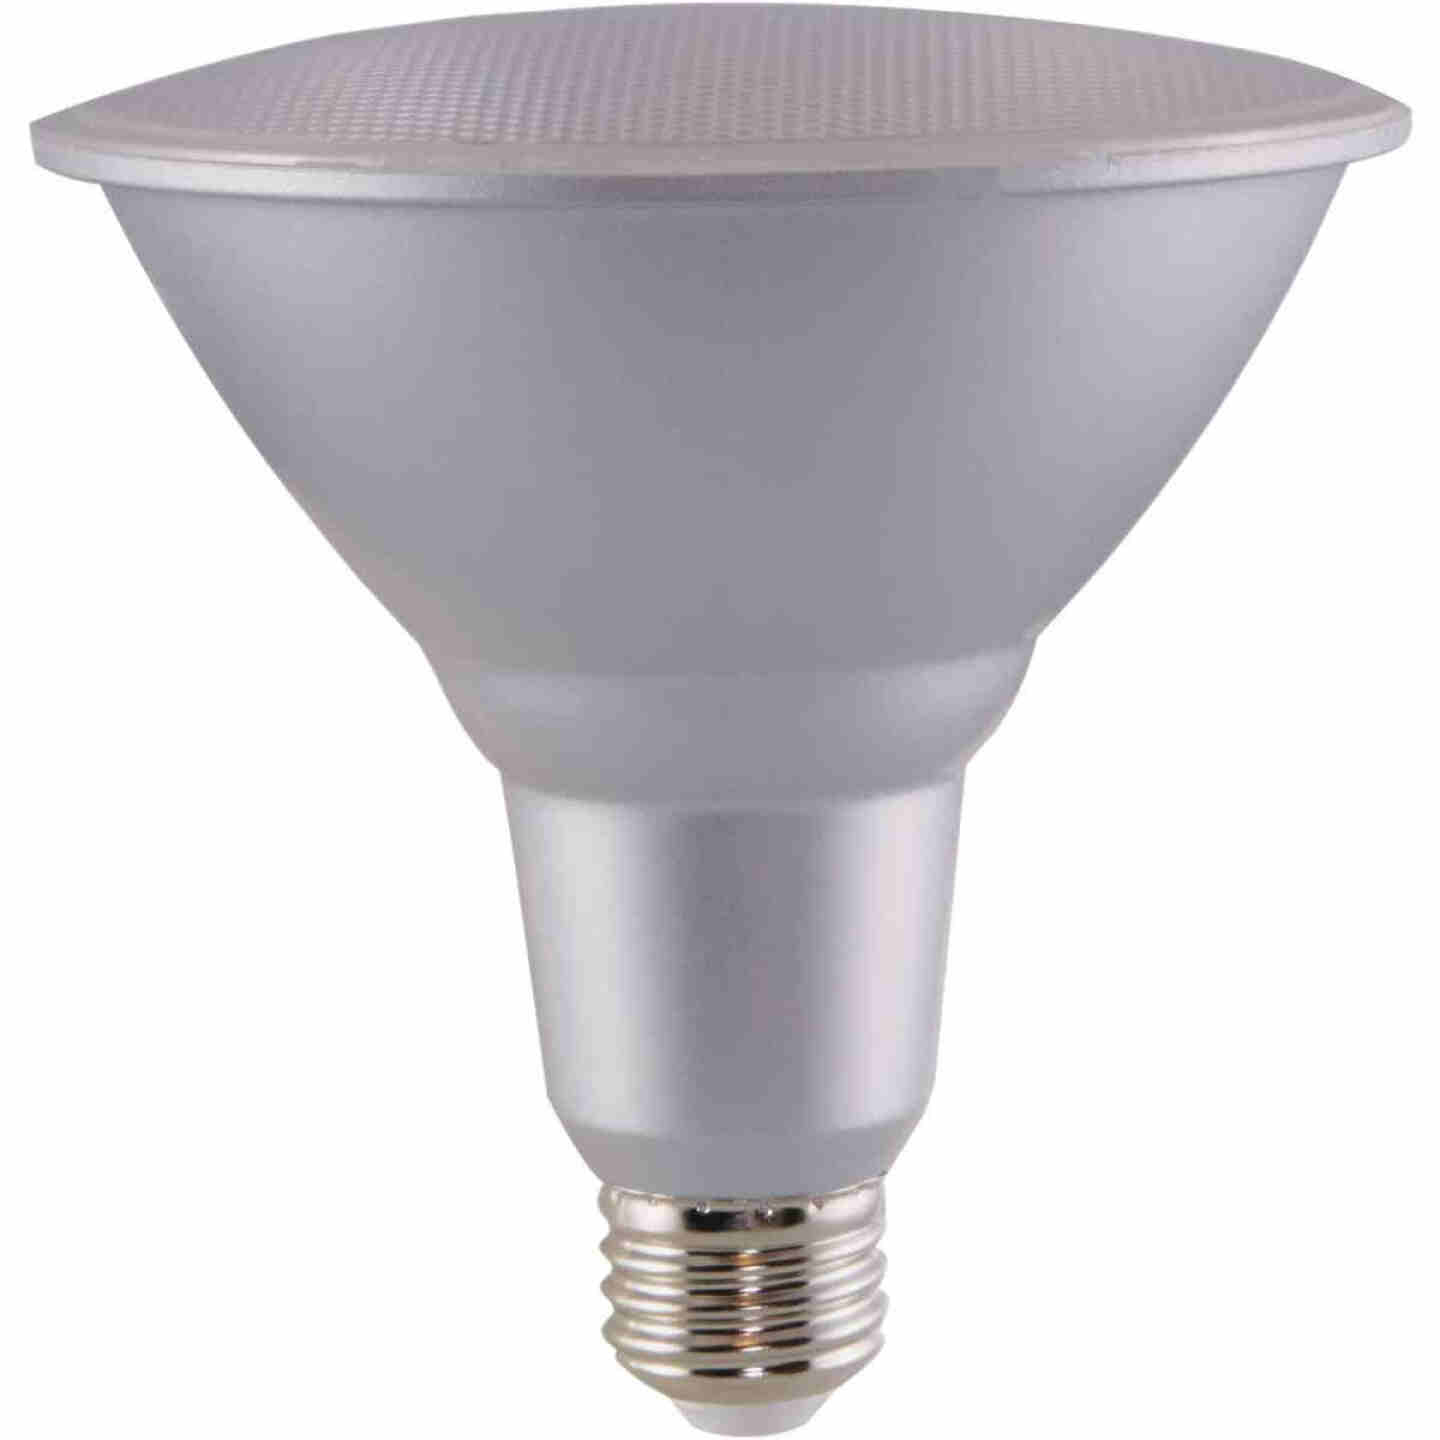 Satco Nuvo 90W Equivalent Natural Light PAR38 Medium Dimmable LED Floodlight Light Bulb Image 4